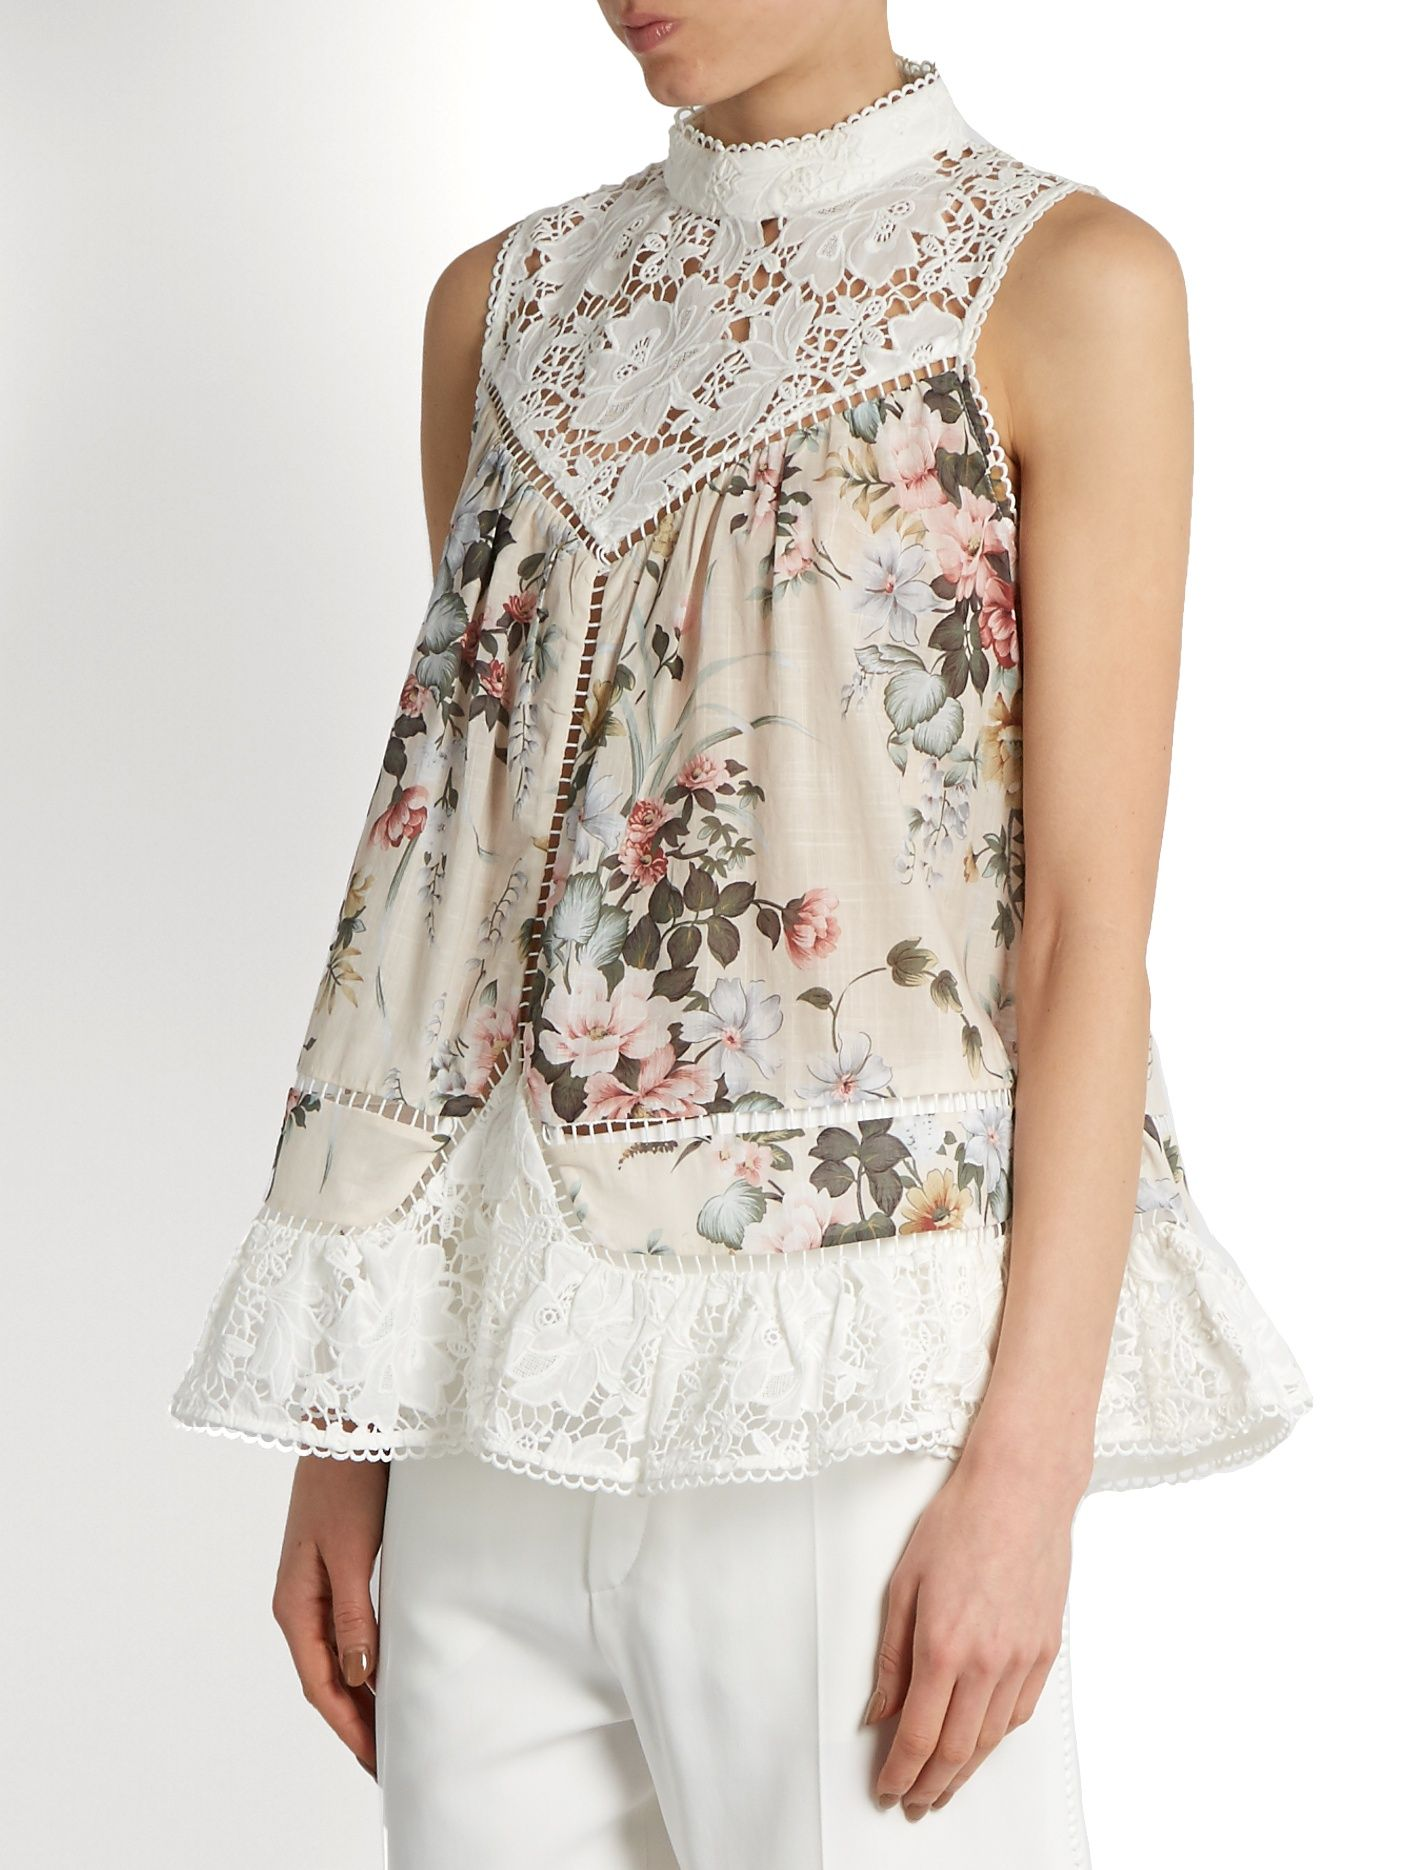 bfe896a55d905 Click here to buy Zimmermann Aerial Smock floral-print cotton top at  MATCHESFASHION.COM